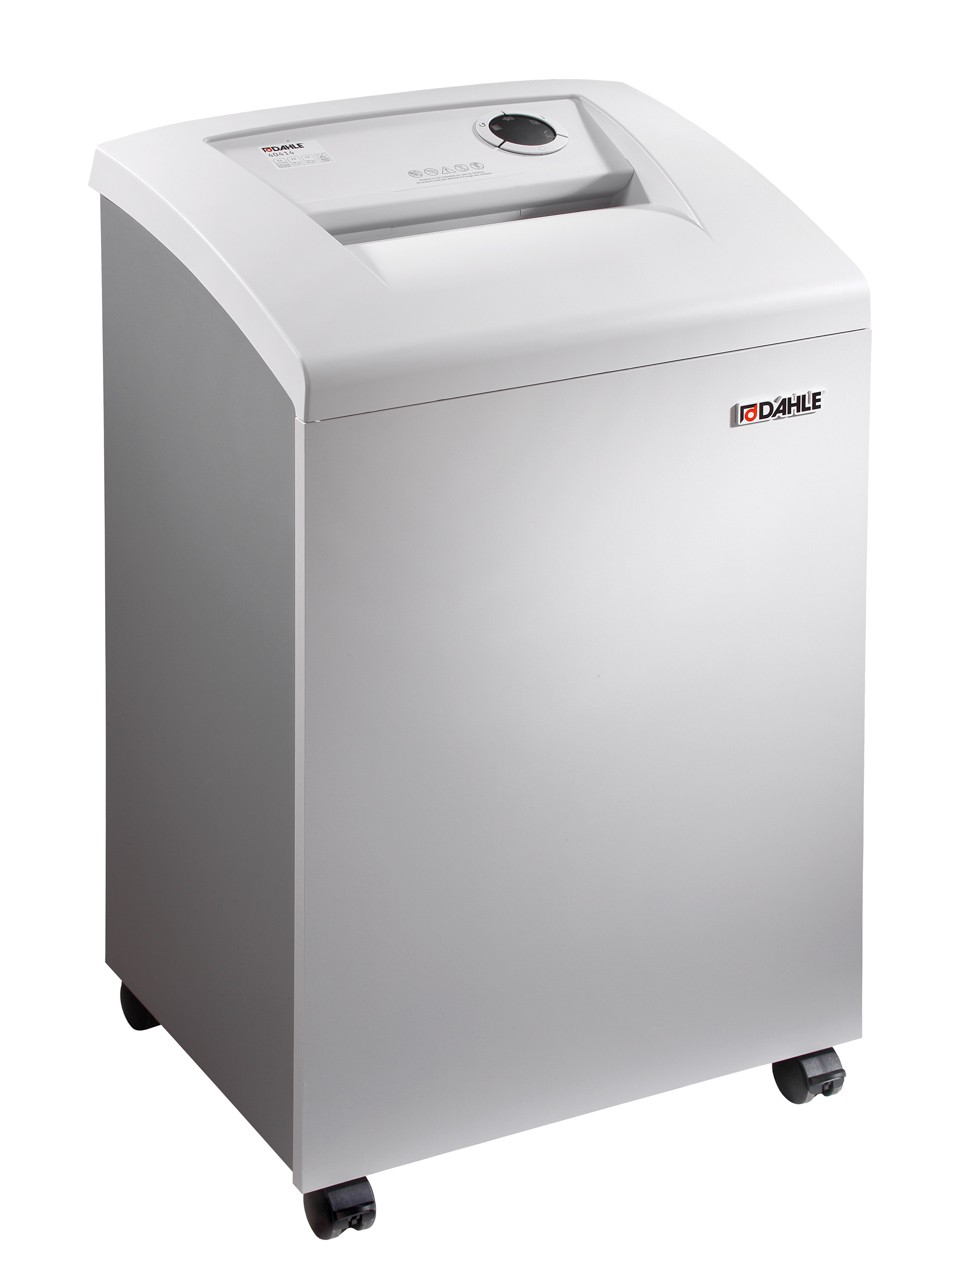 Dahle 41434 CleanTEC NSA/CSS 02-01 Approved High Security Cross-Cut Shredder - 30 Gallon